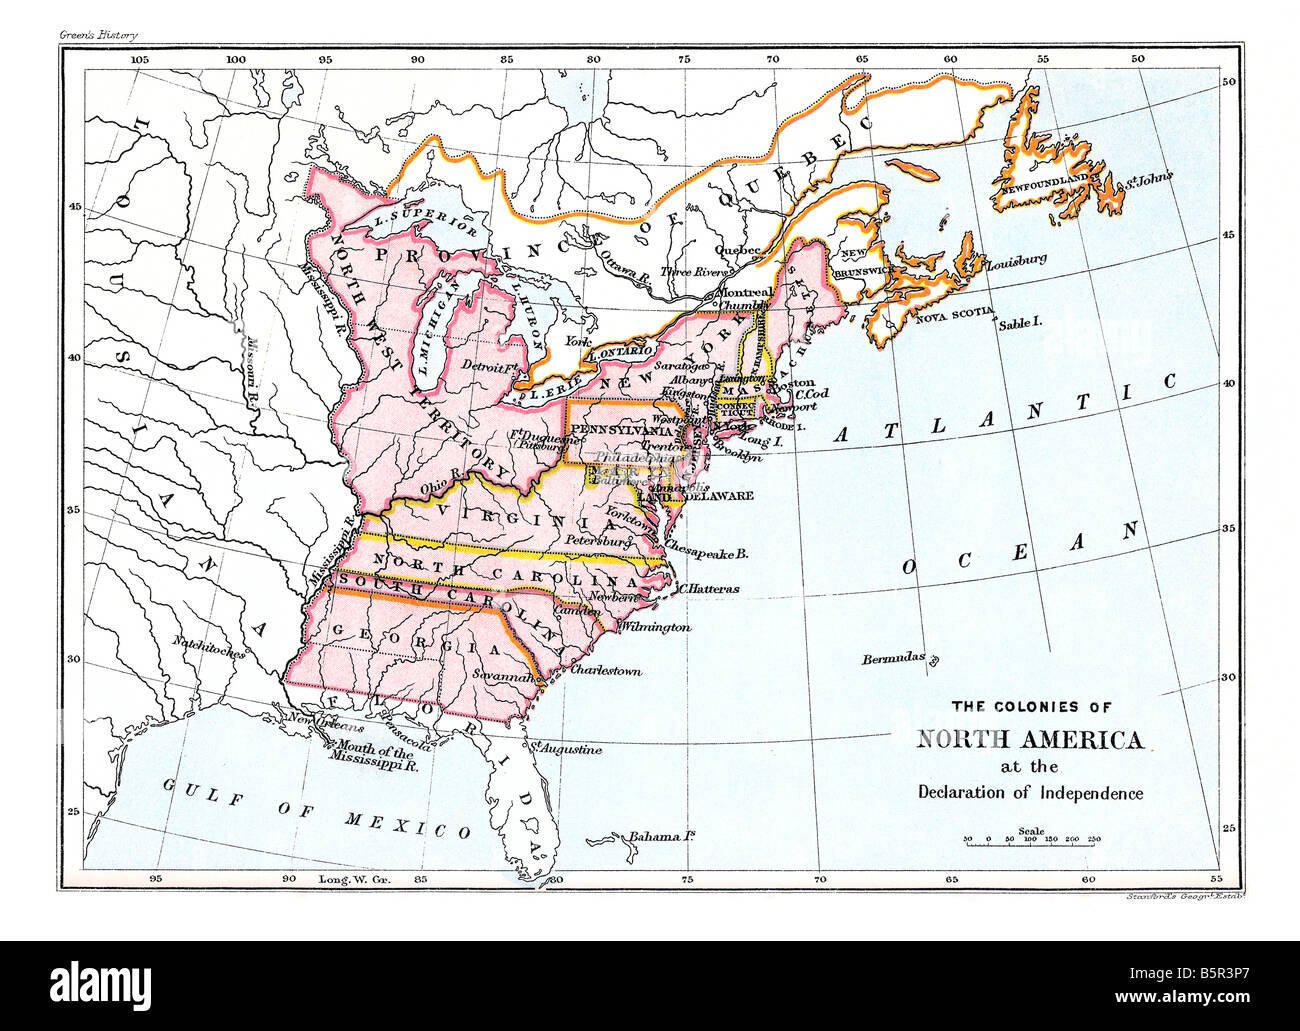 Map of the colonies of North America at the Declaration of Independence - Stock Image